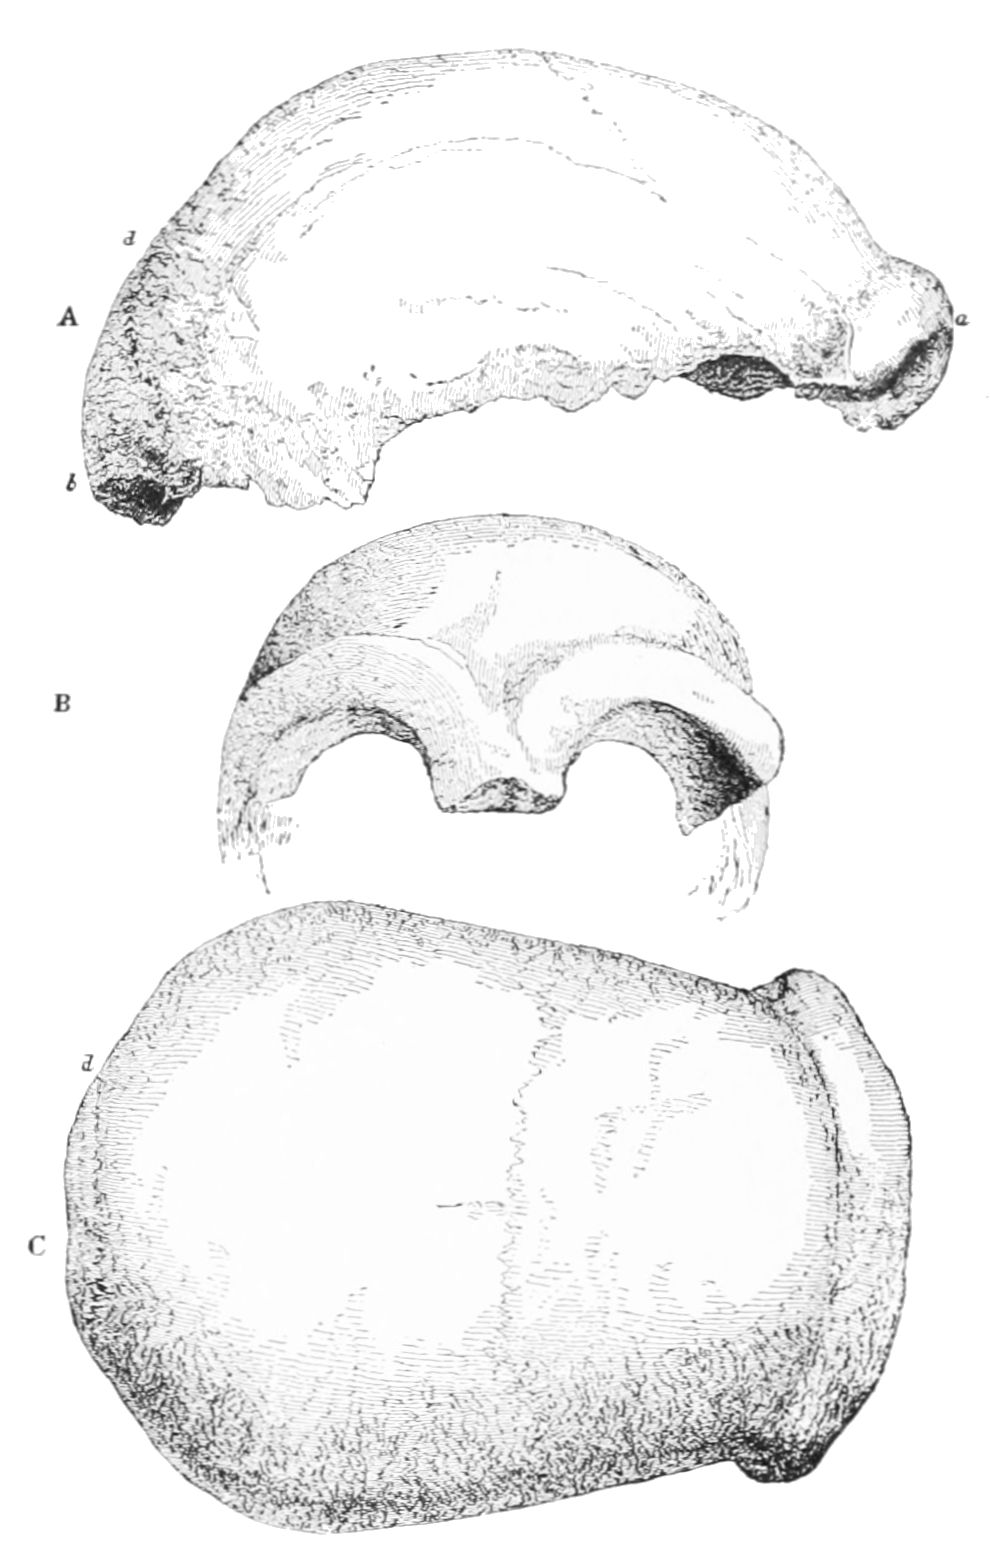 PSM V44 D633 A skull from a neanderthal cavern.jpg